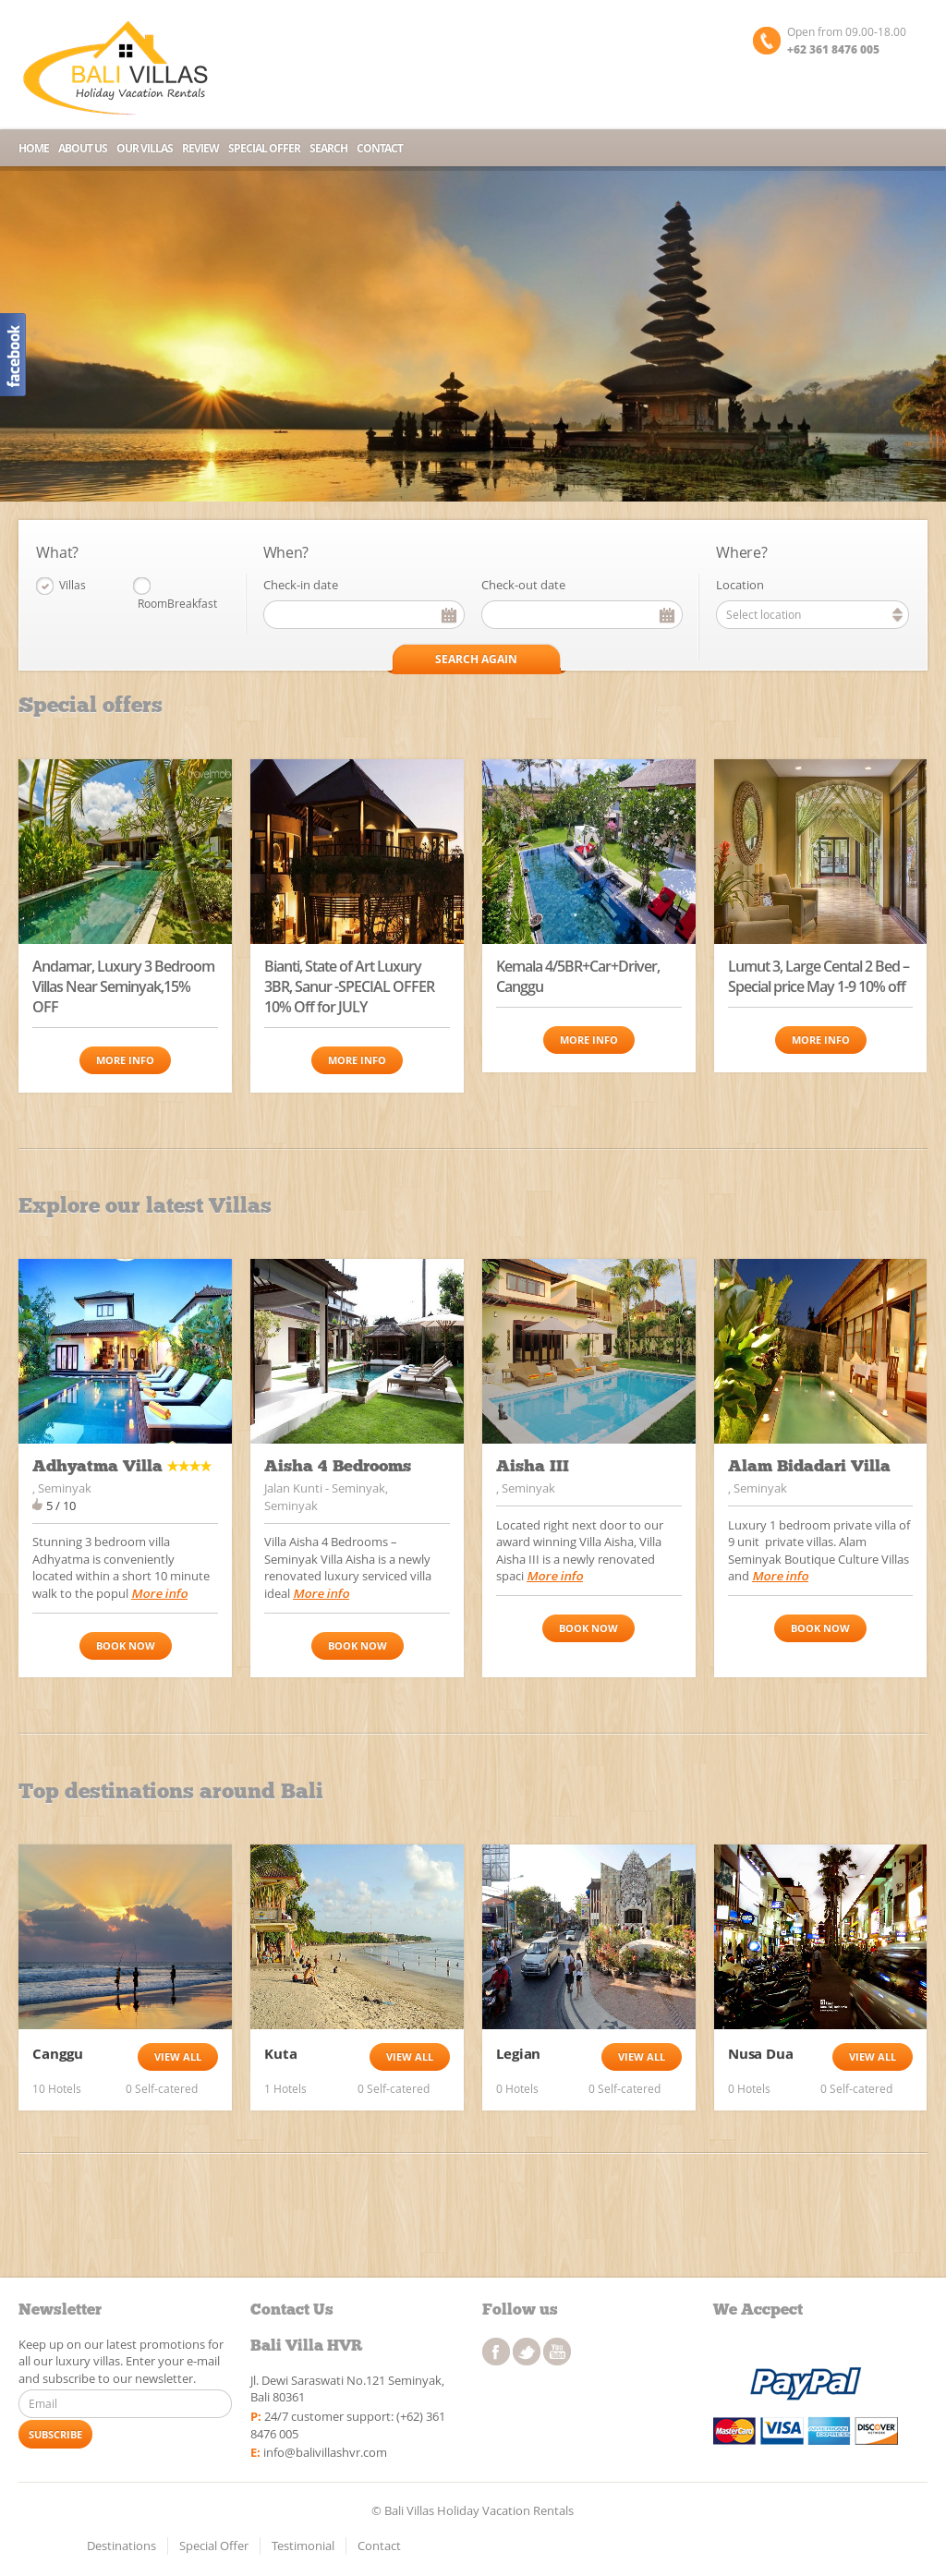 Bali Villas Holiday Vacation Rentals S Competitors Revenue Number Of Employees Funding Acquisitions News Owler Company Profile